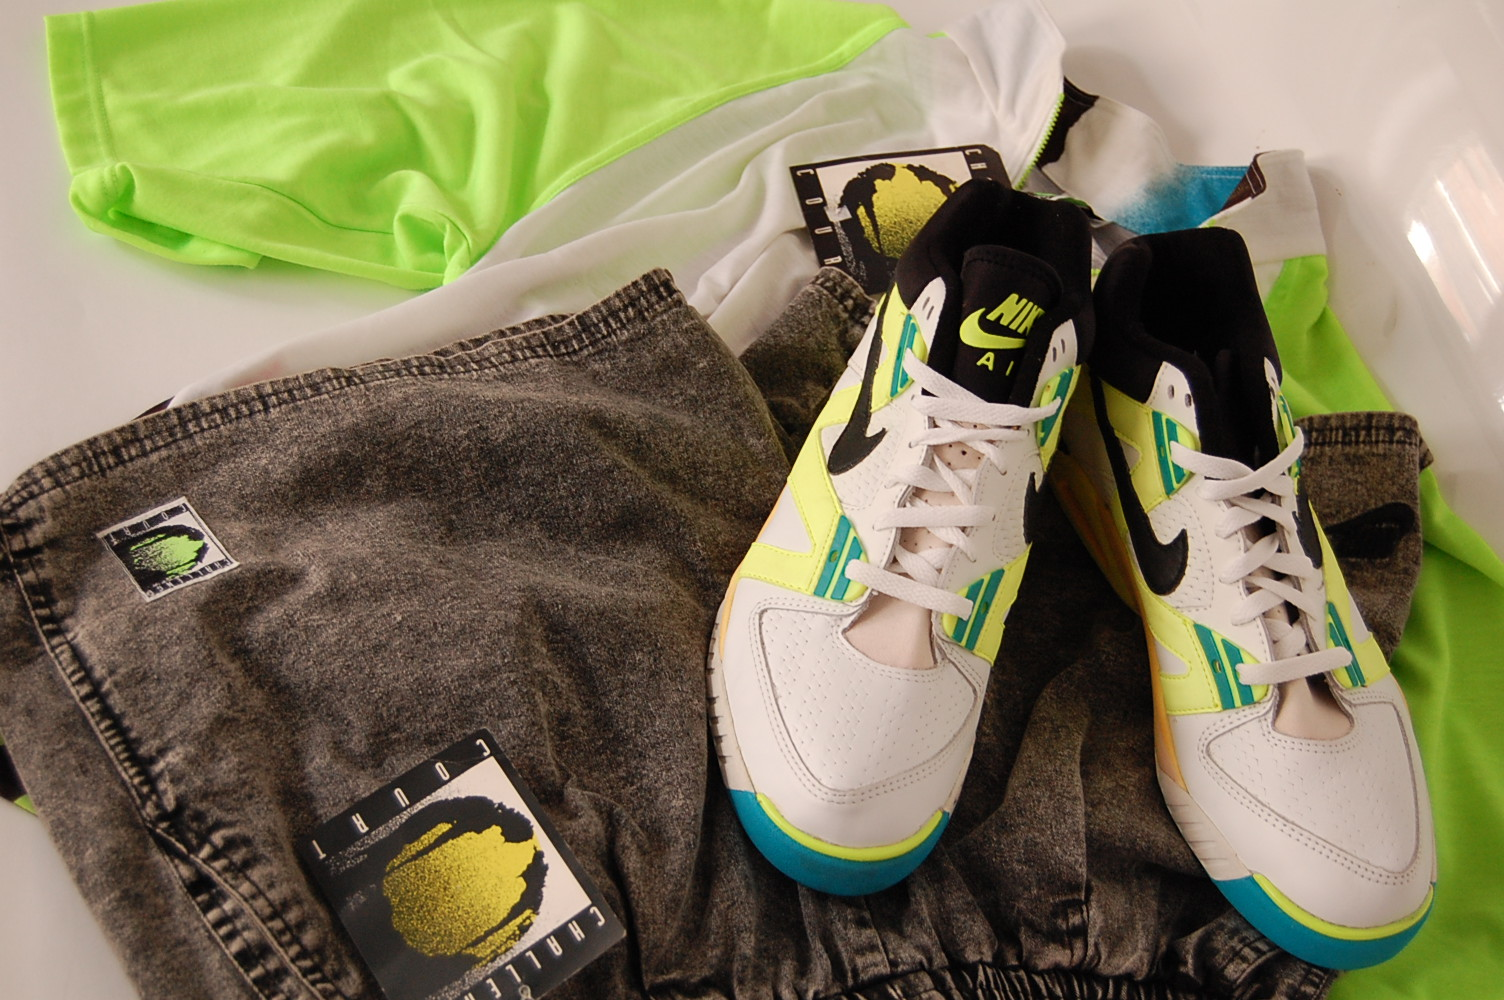 andre agassi tennis gear